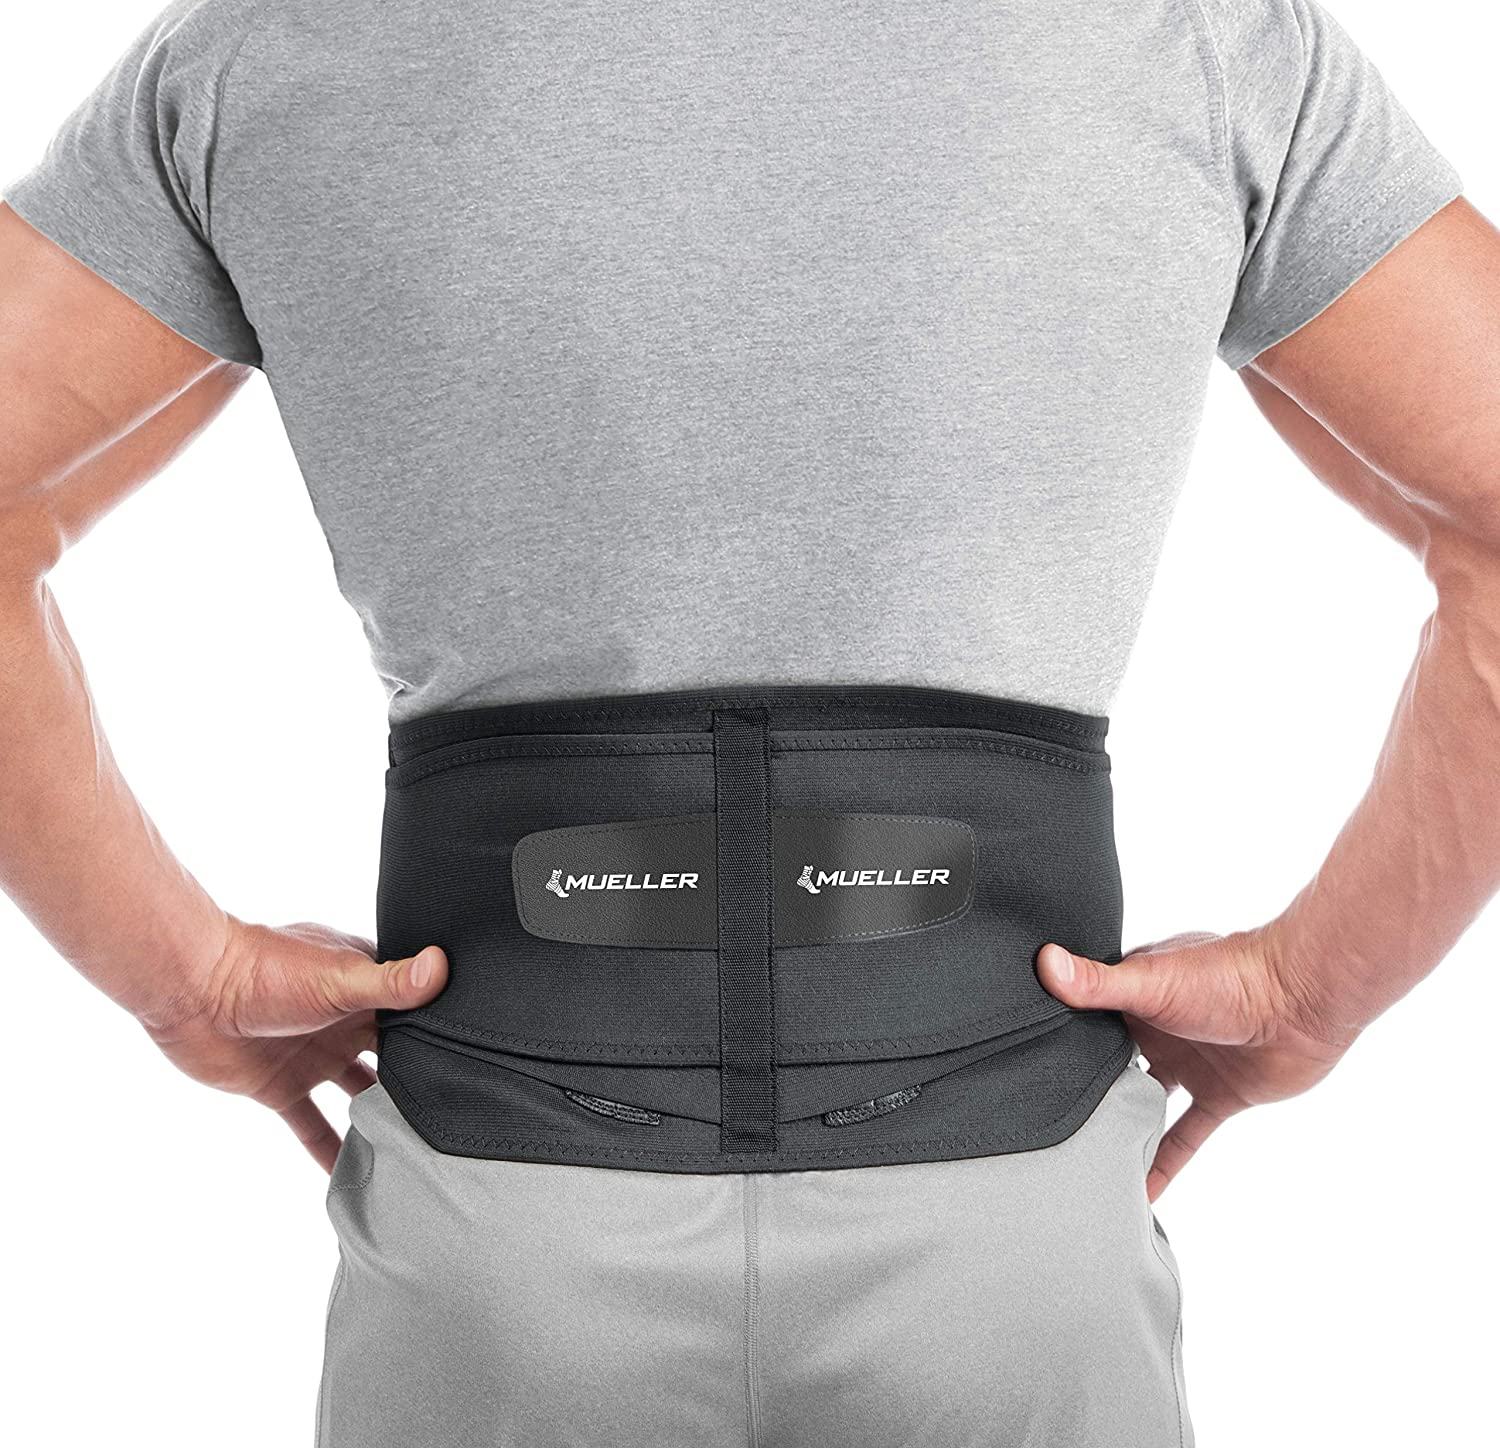 Mueller 255 Lumbar Support Back Brace with Removable Pad, Black, Regular(Package May Vary): Health & Personal Care